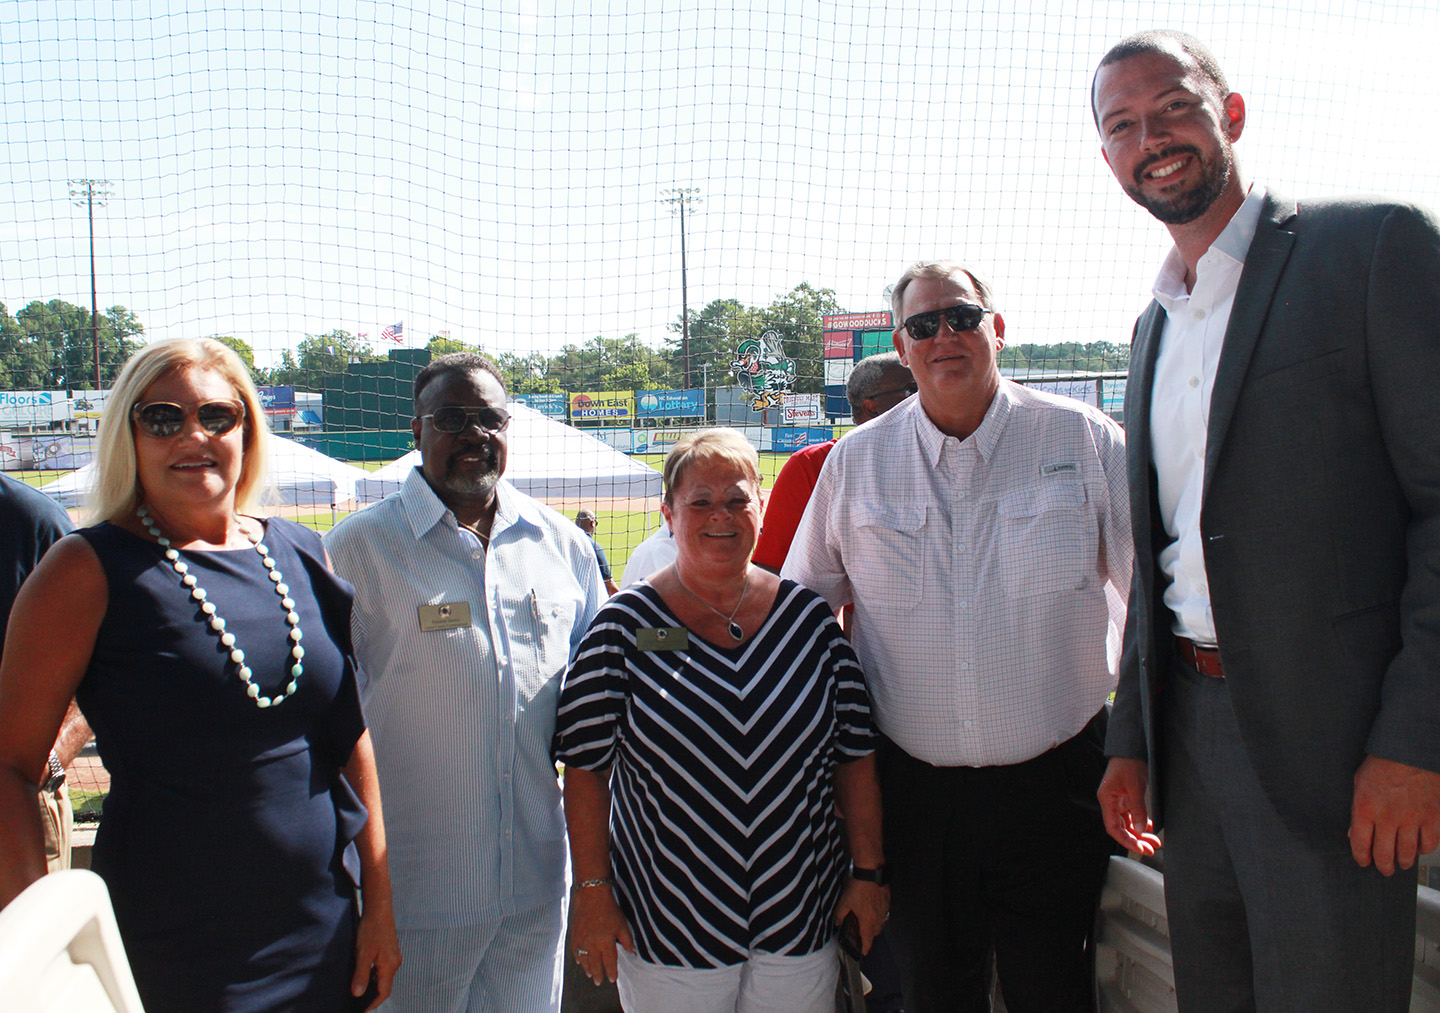 From left, Lenoir County Clerk of Court Dawn Stroud, Lenoir County Commissioner Preston Harris, Lenoir County Commissioners Chair Linda Rouse Sutton, Lenoir County Commissioner Craig Hill and Lenoir County Manager Michael James